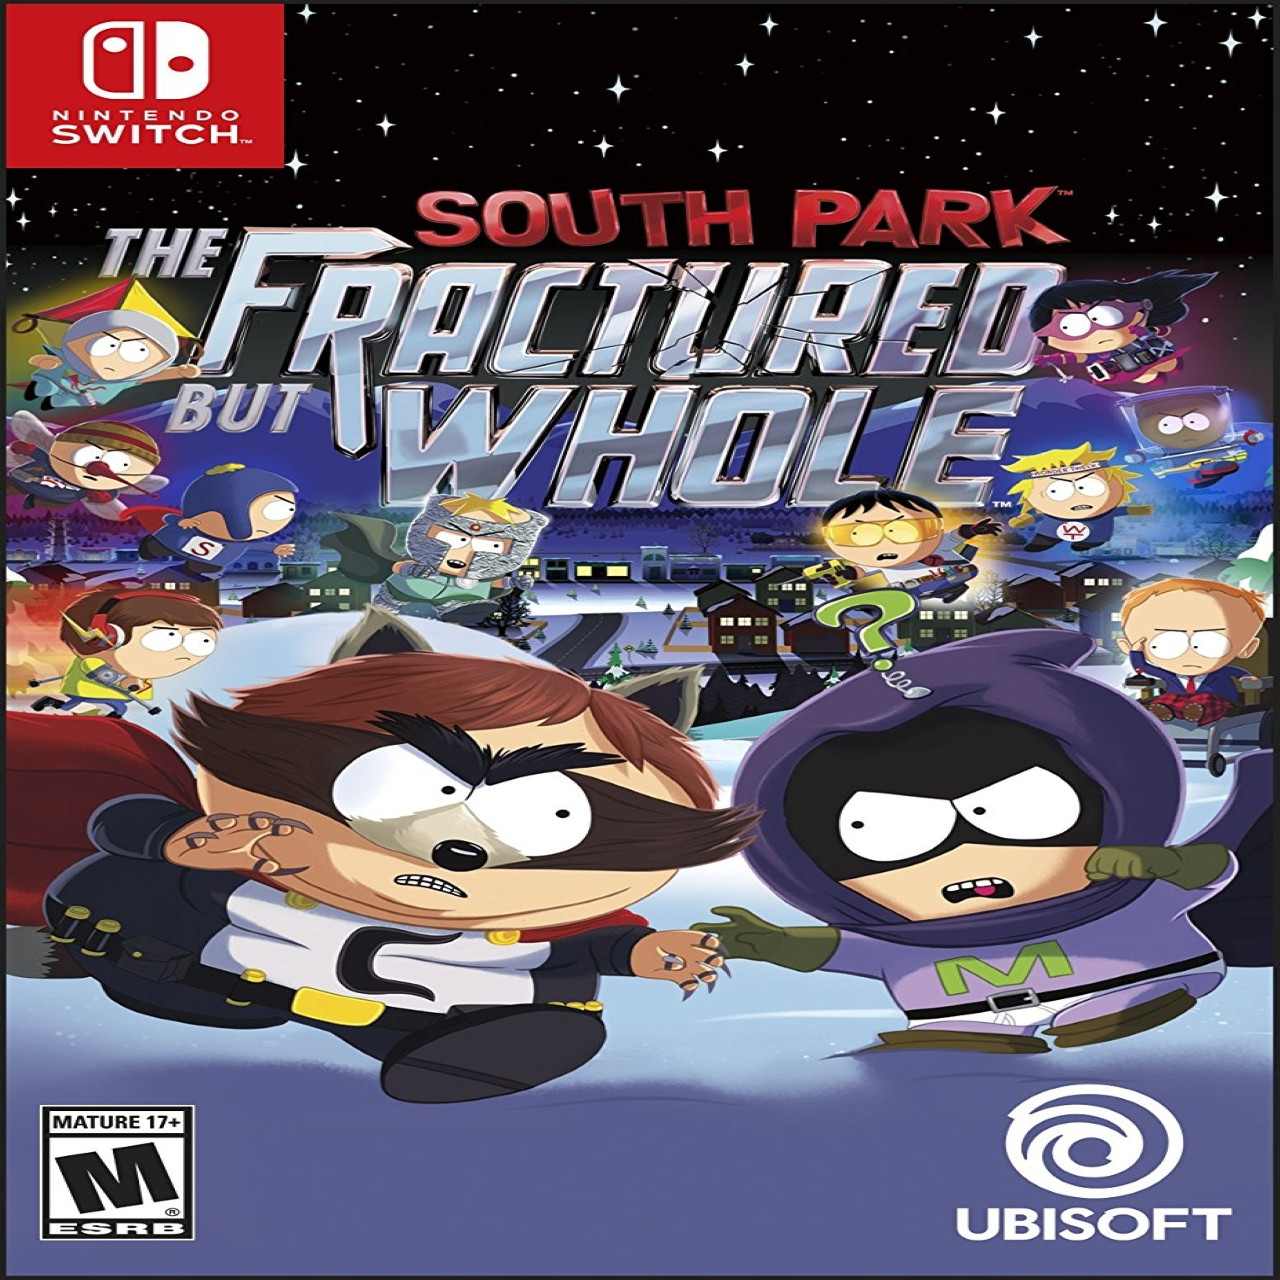 South Park The Fractured but Whole SUB Nintendo Switch